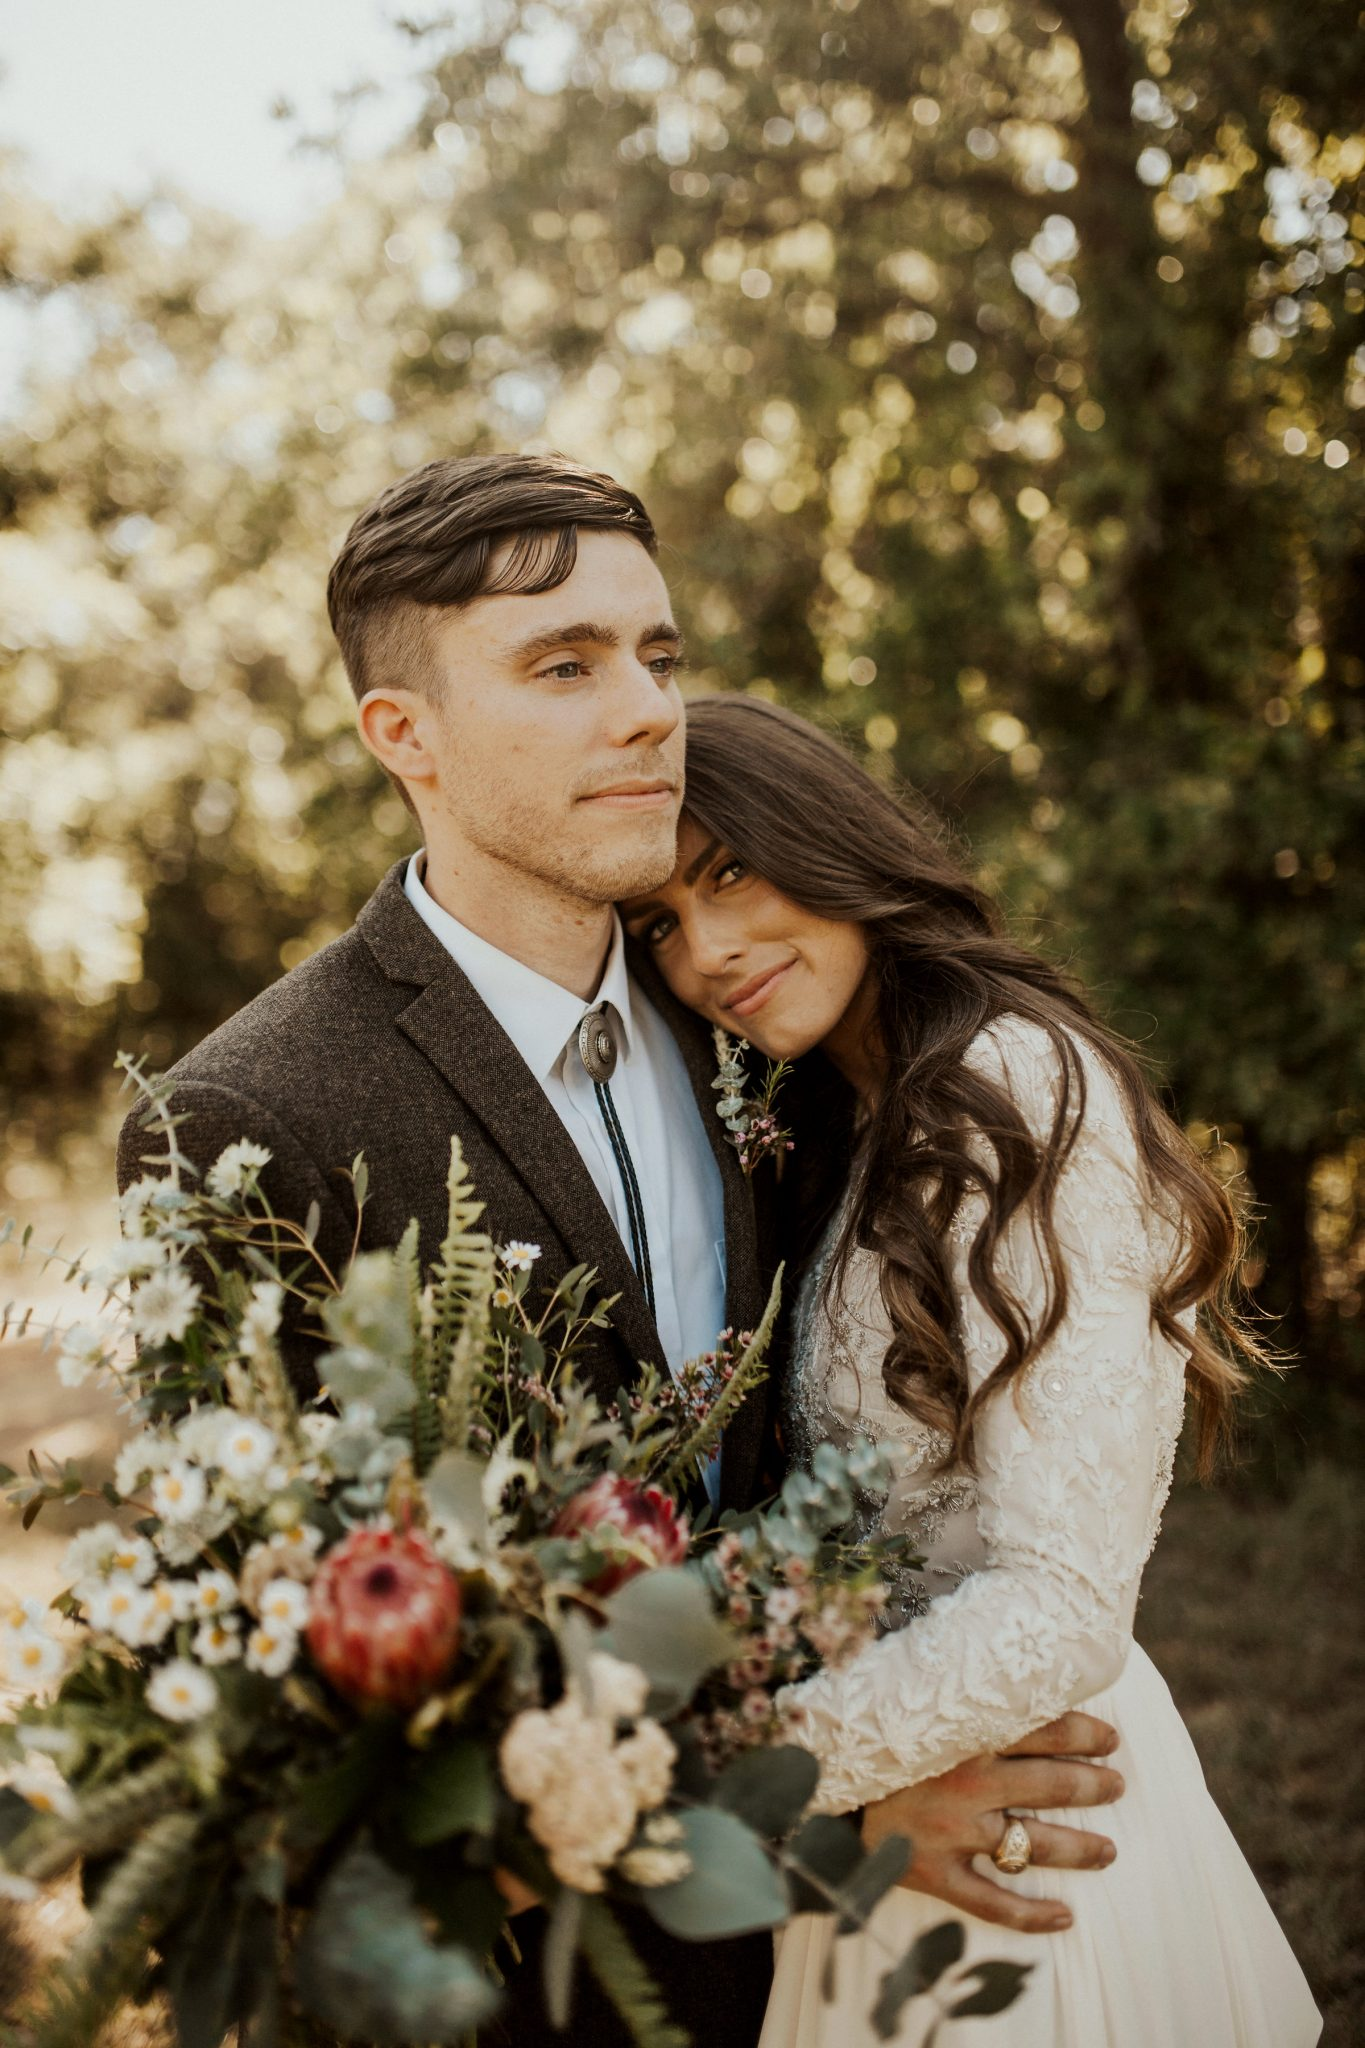 Their rustic romance wedding was full of charm and wildflowers